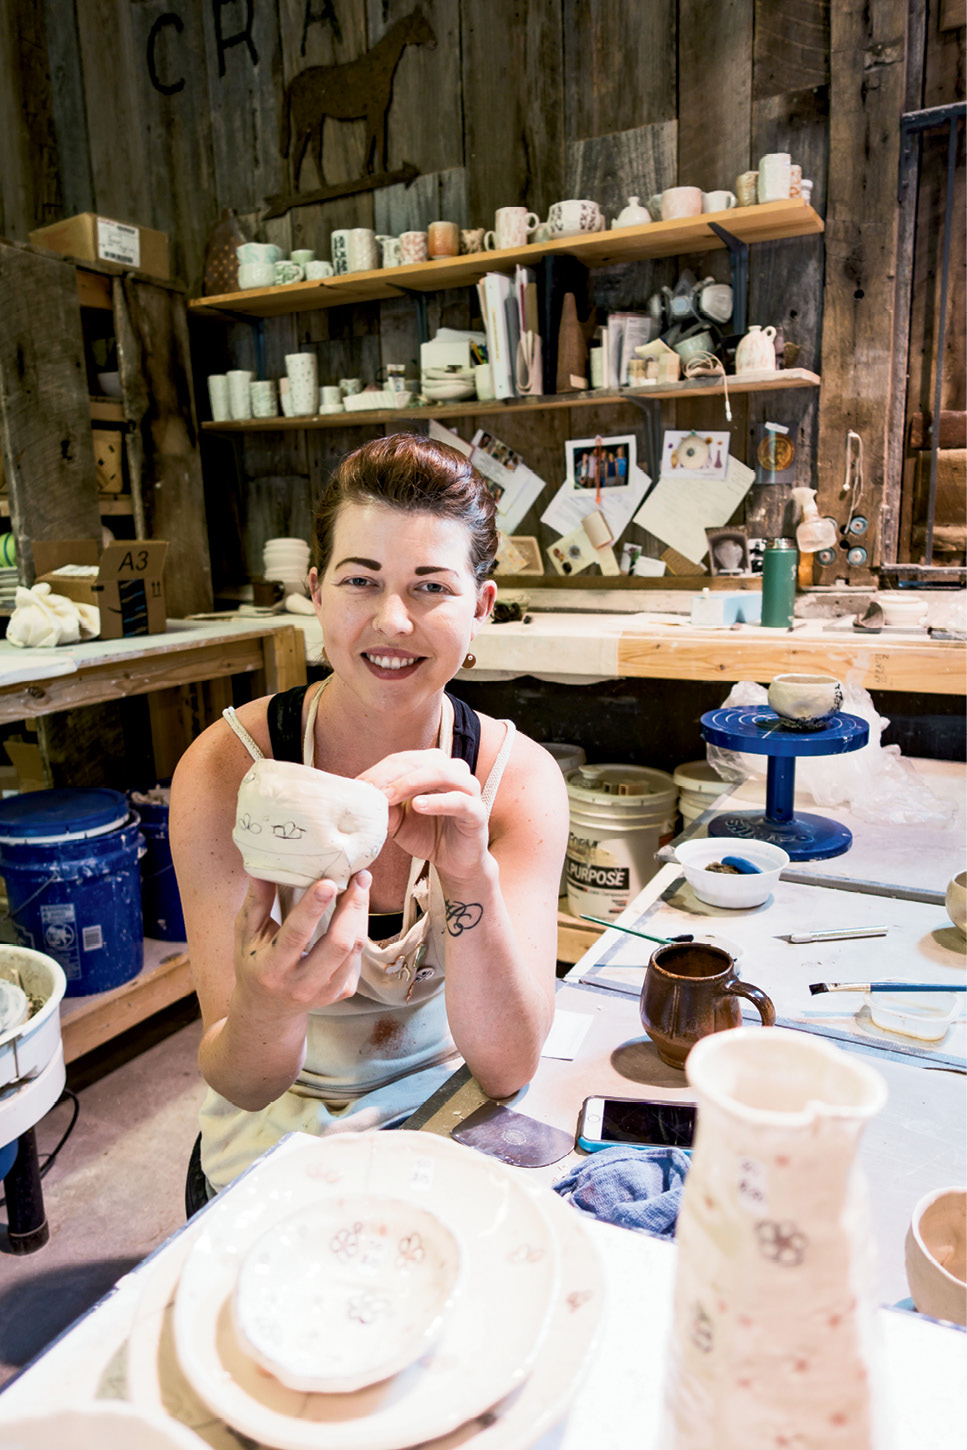 Ceramicist Samantha Oliver at work at The Bascom, a community arts center and gallery in Highlands